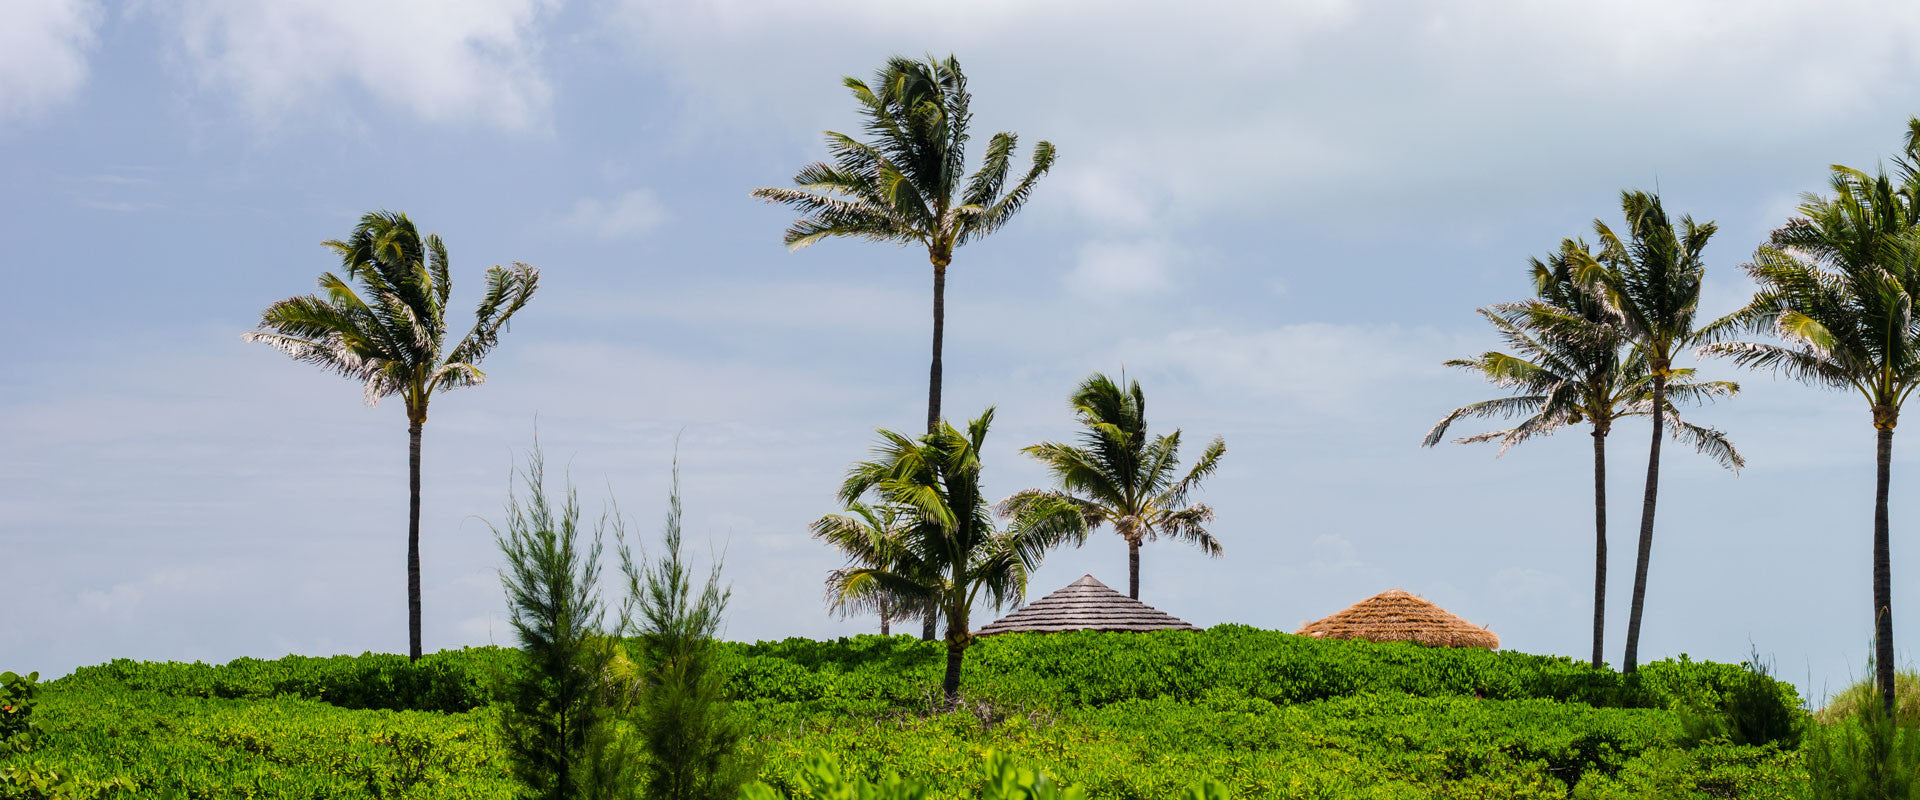 Palm Trees and Hut LookLagoon Lifestyle